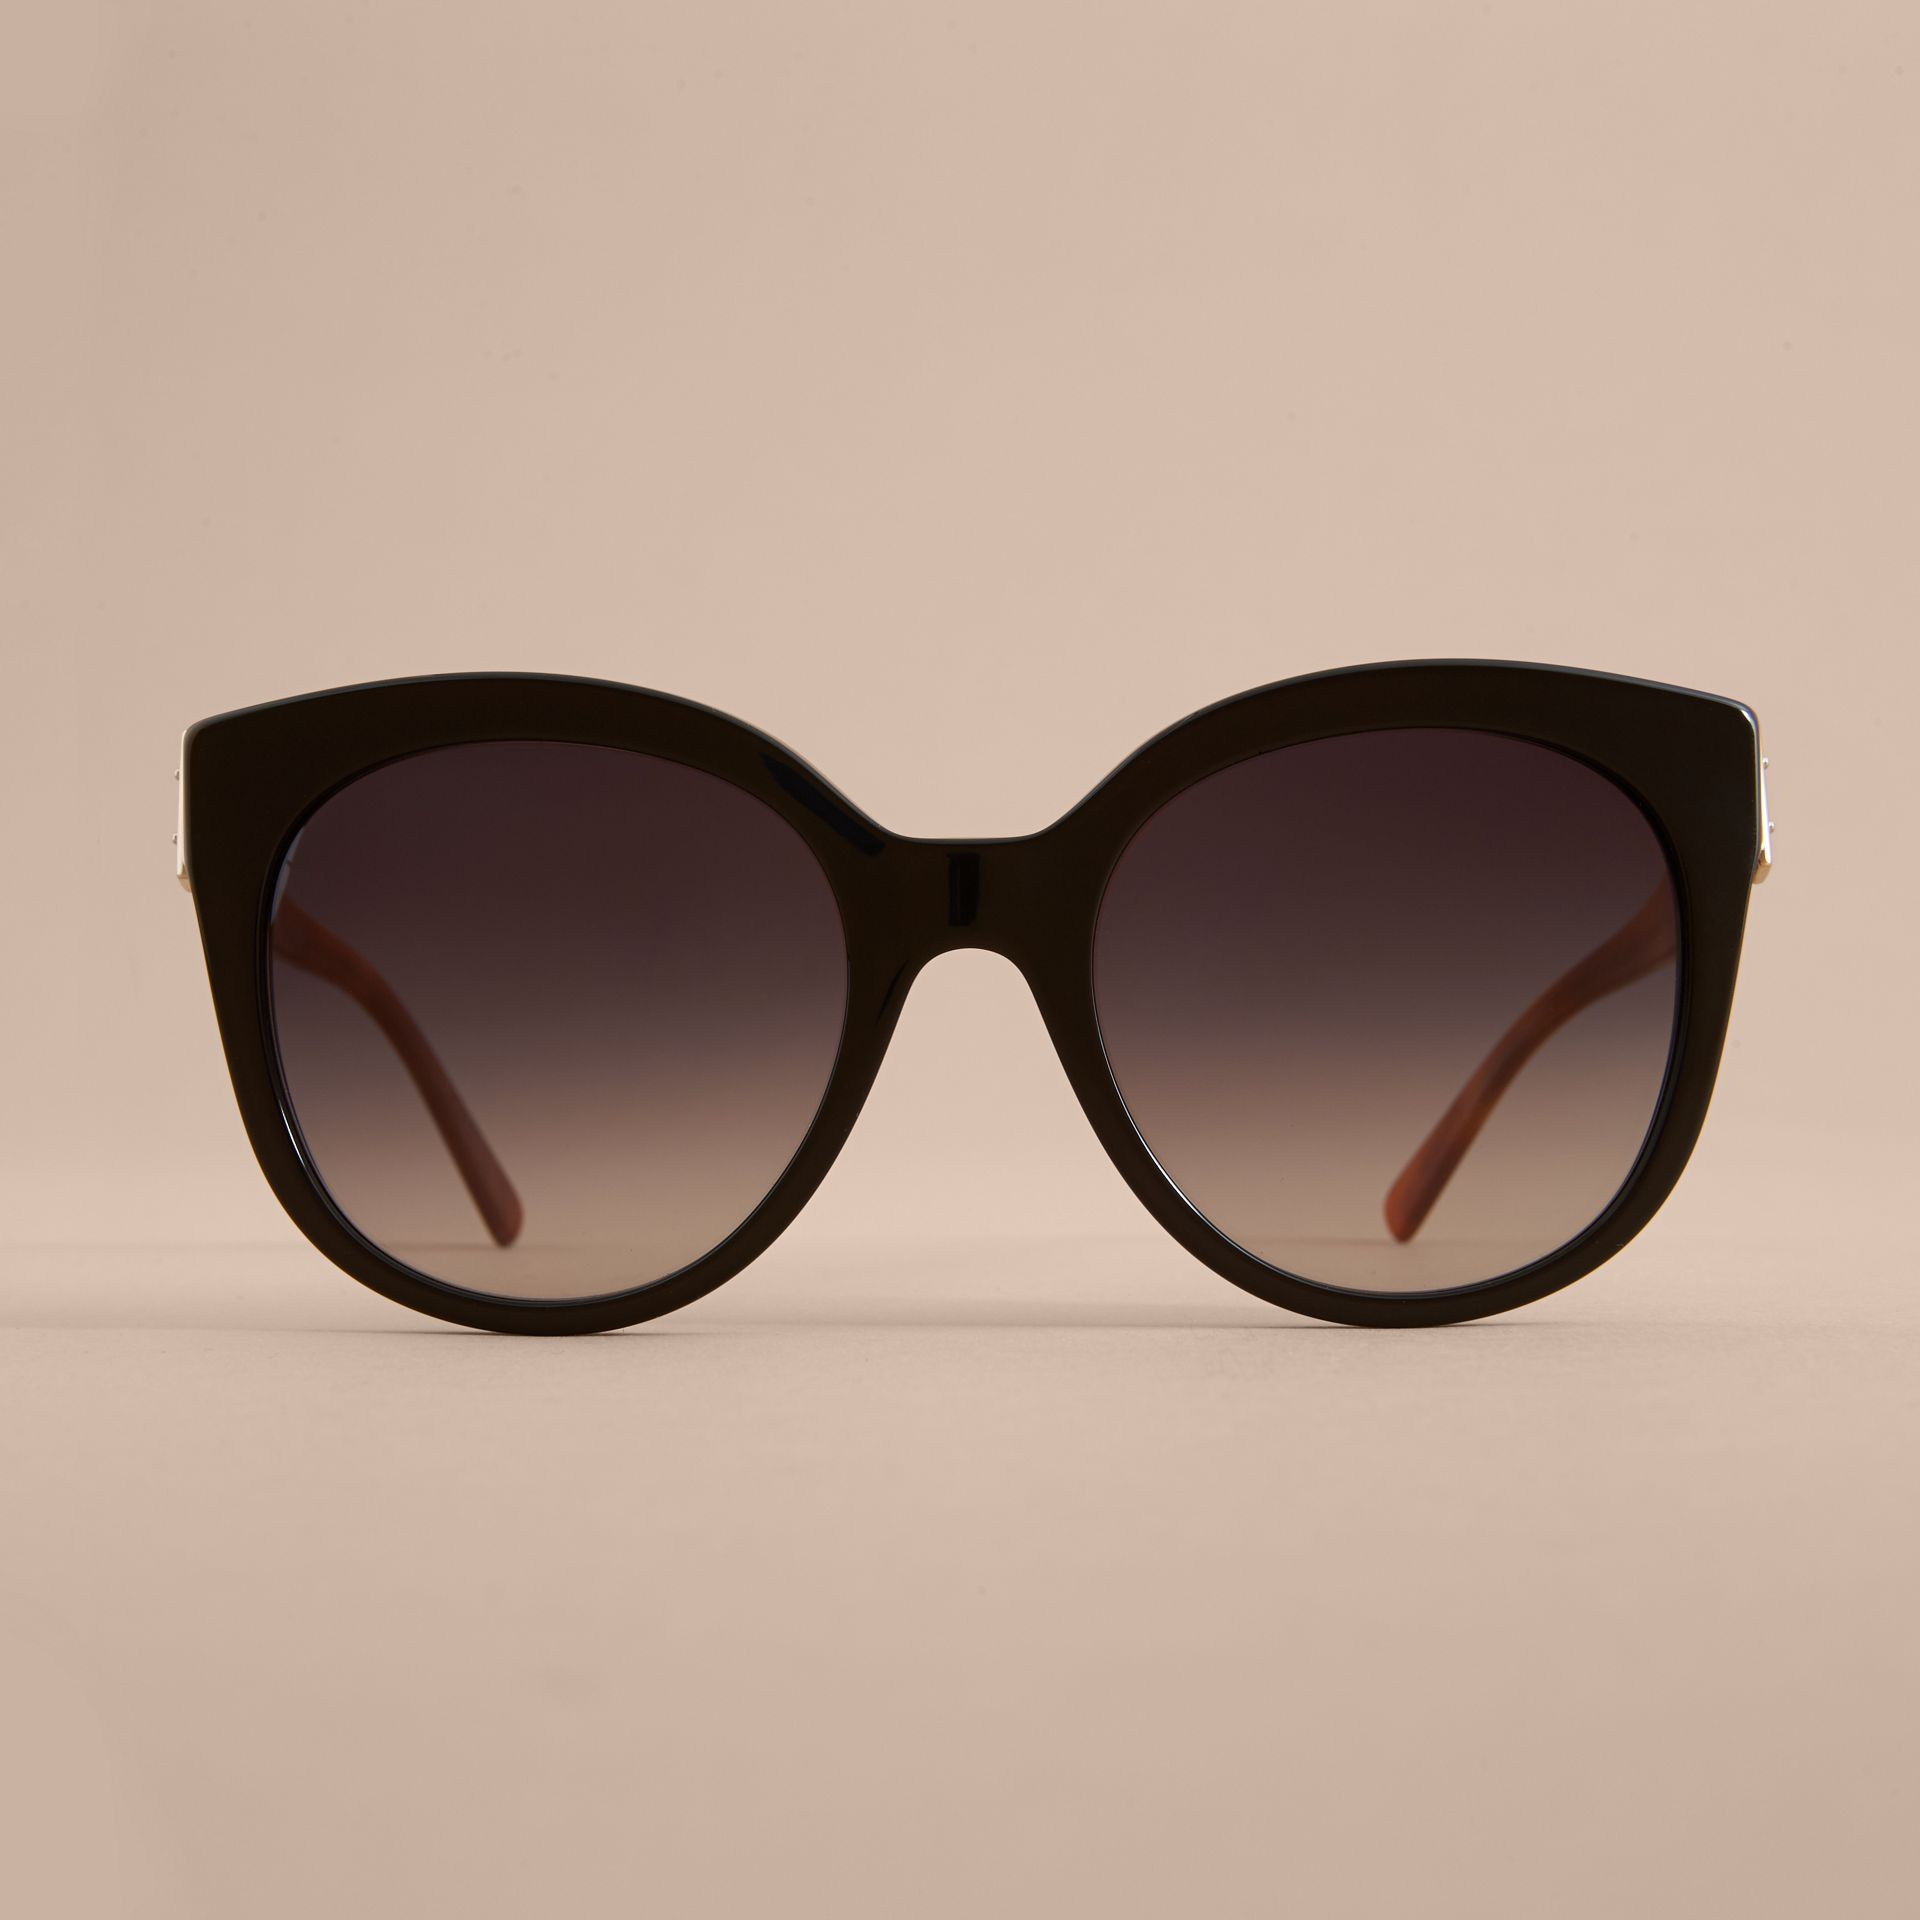 Buckle Detail Cat-eye Frame Sunglasses in Black - Women | Burberry United Kingdom - gallery image 2